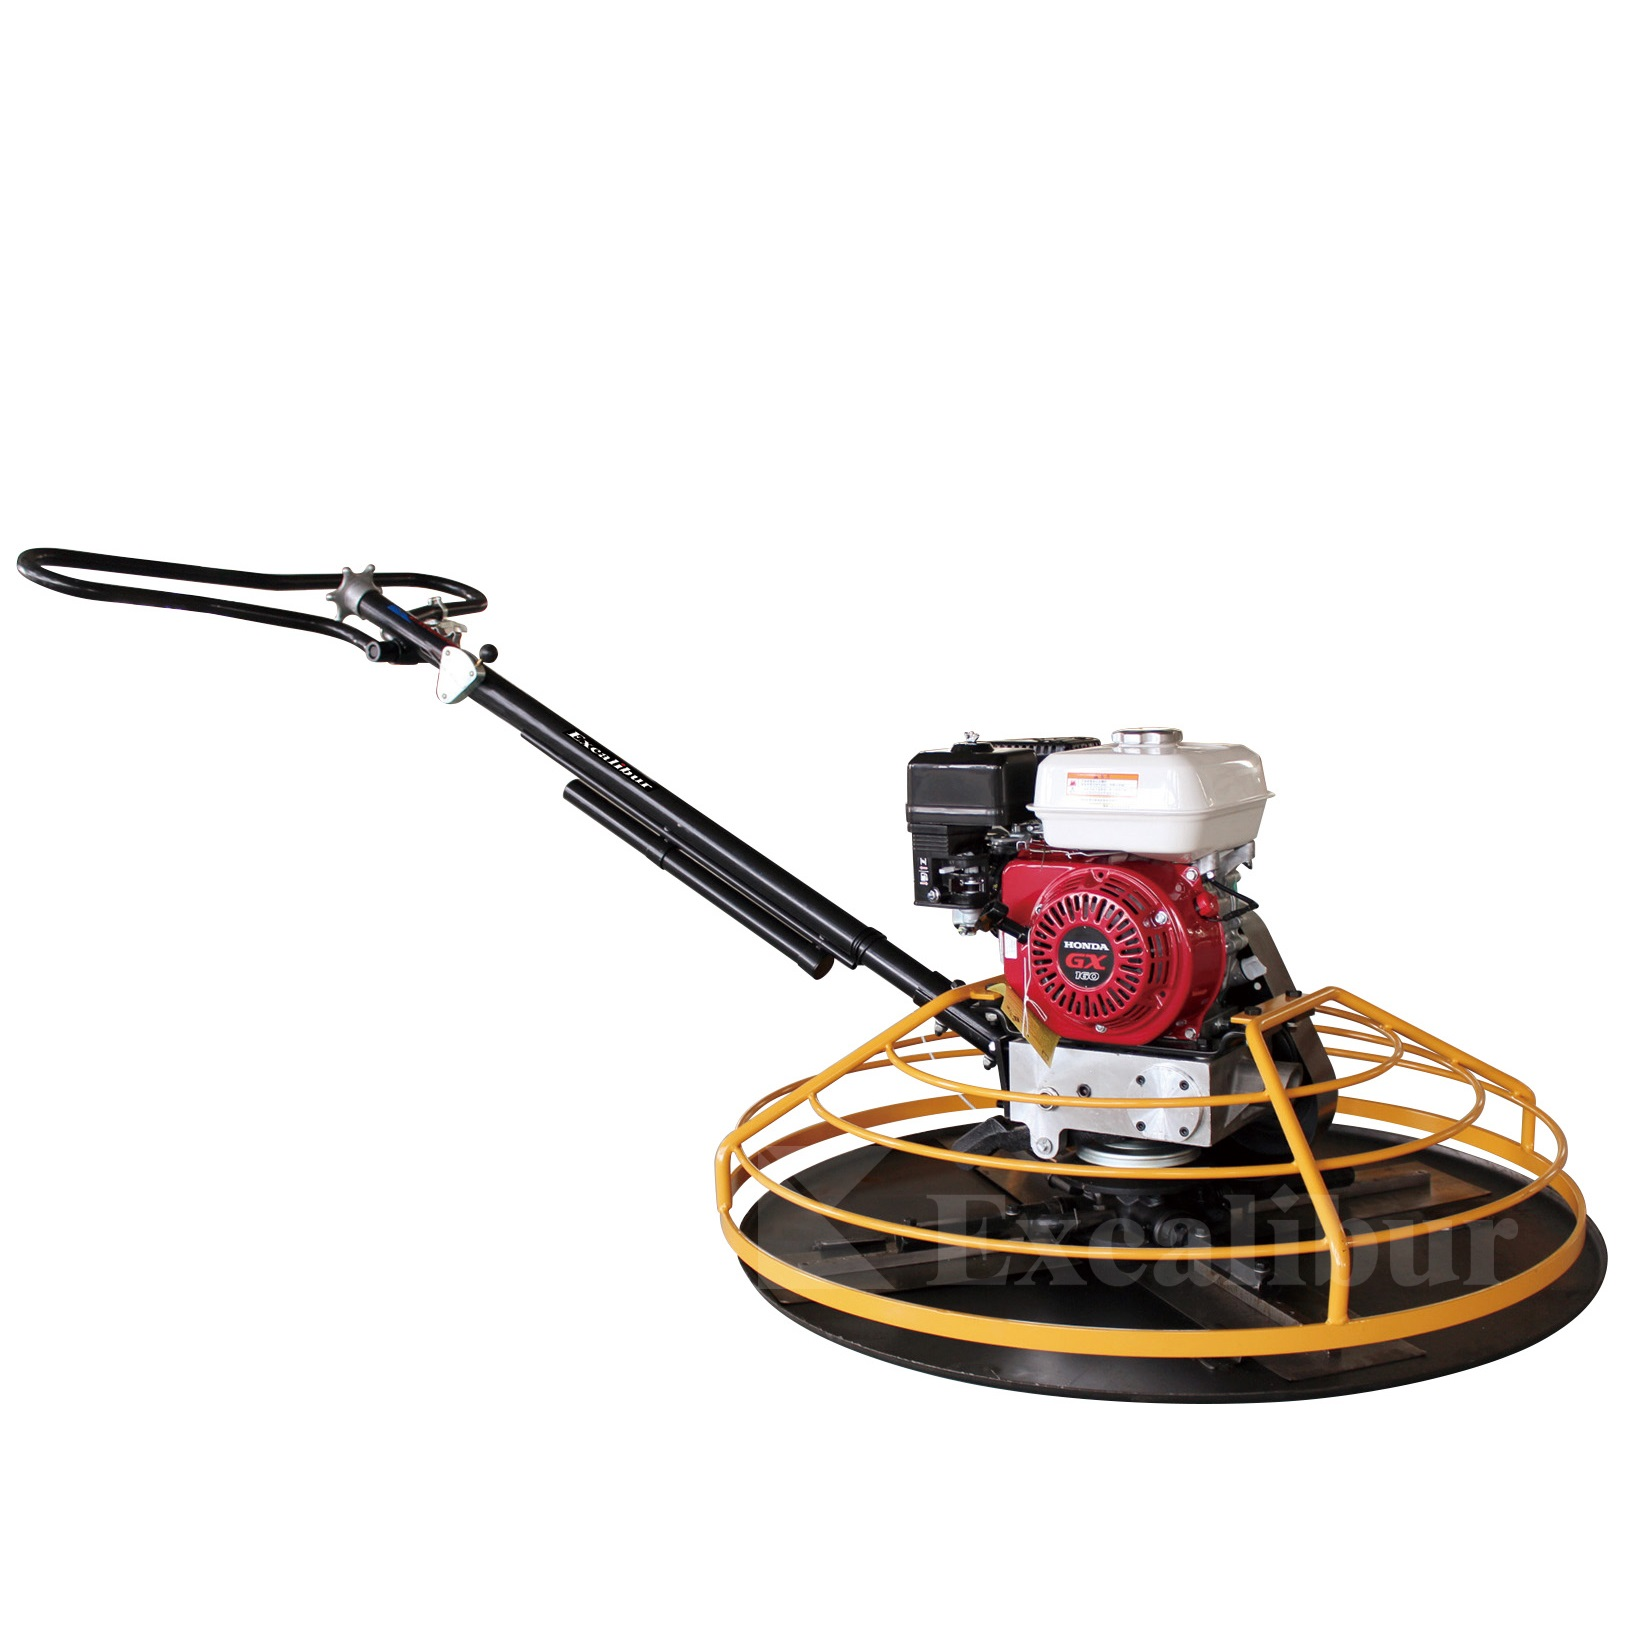 Concrete Power Trowel 100CM Helicopter Trowel powered by Honda GX160 gasoline engine